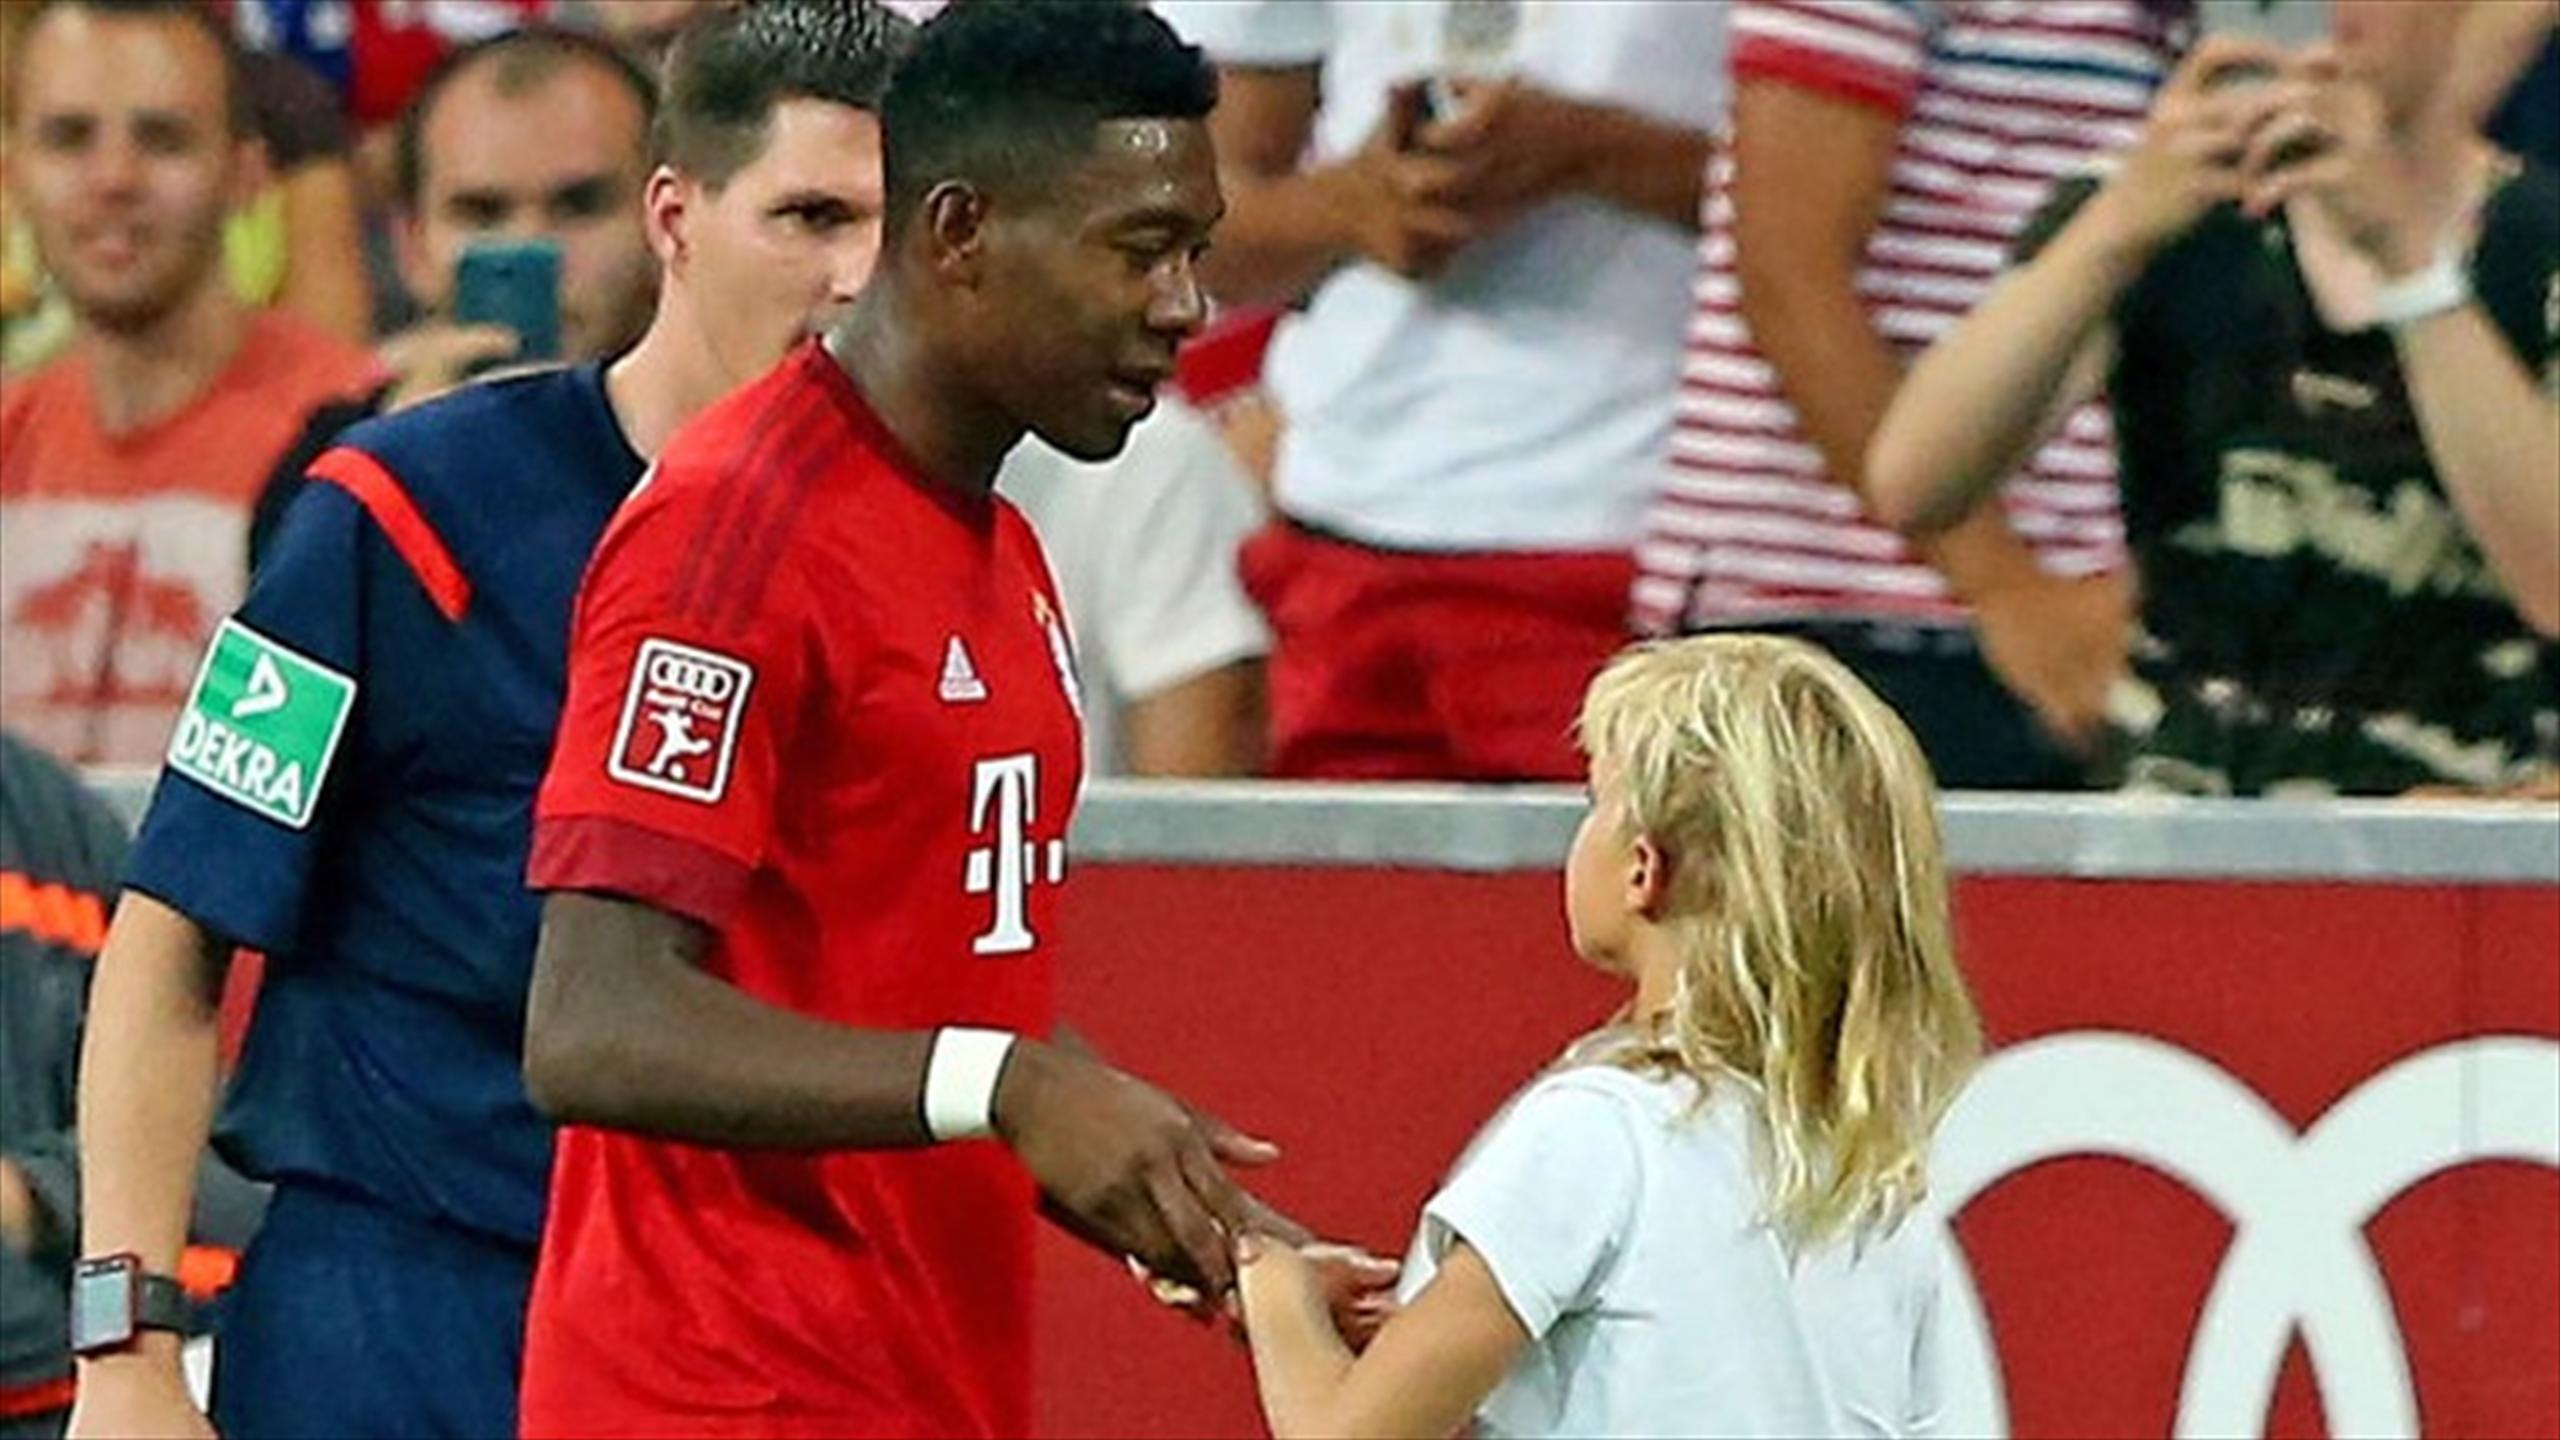 Bayern Munich's David Alaba escorts girl back to her seat